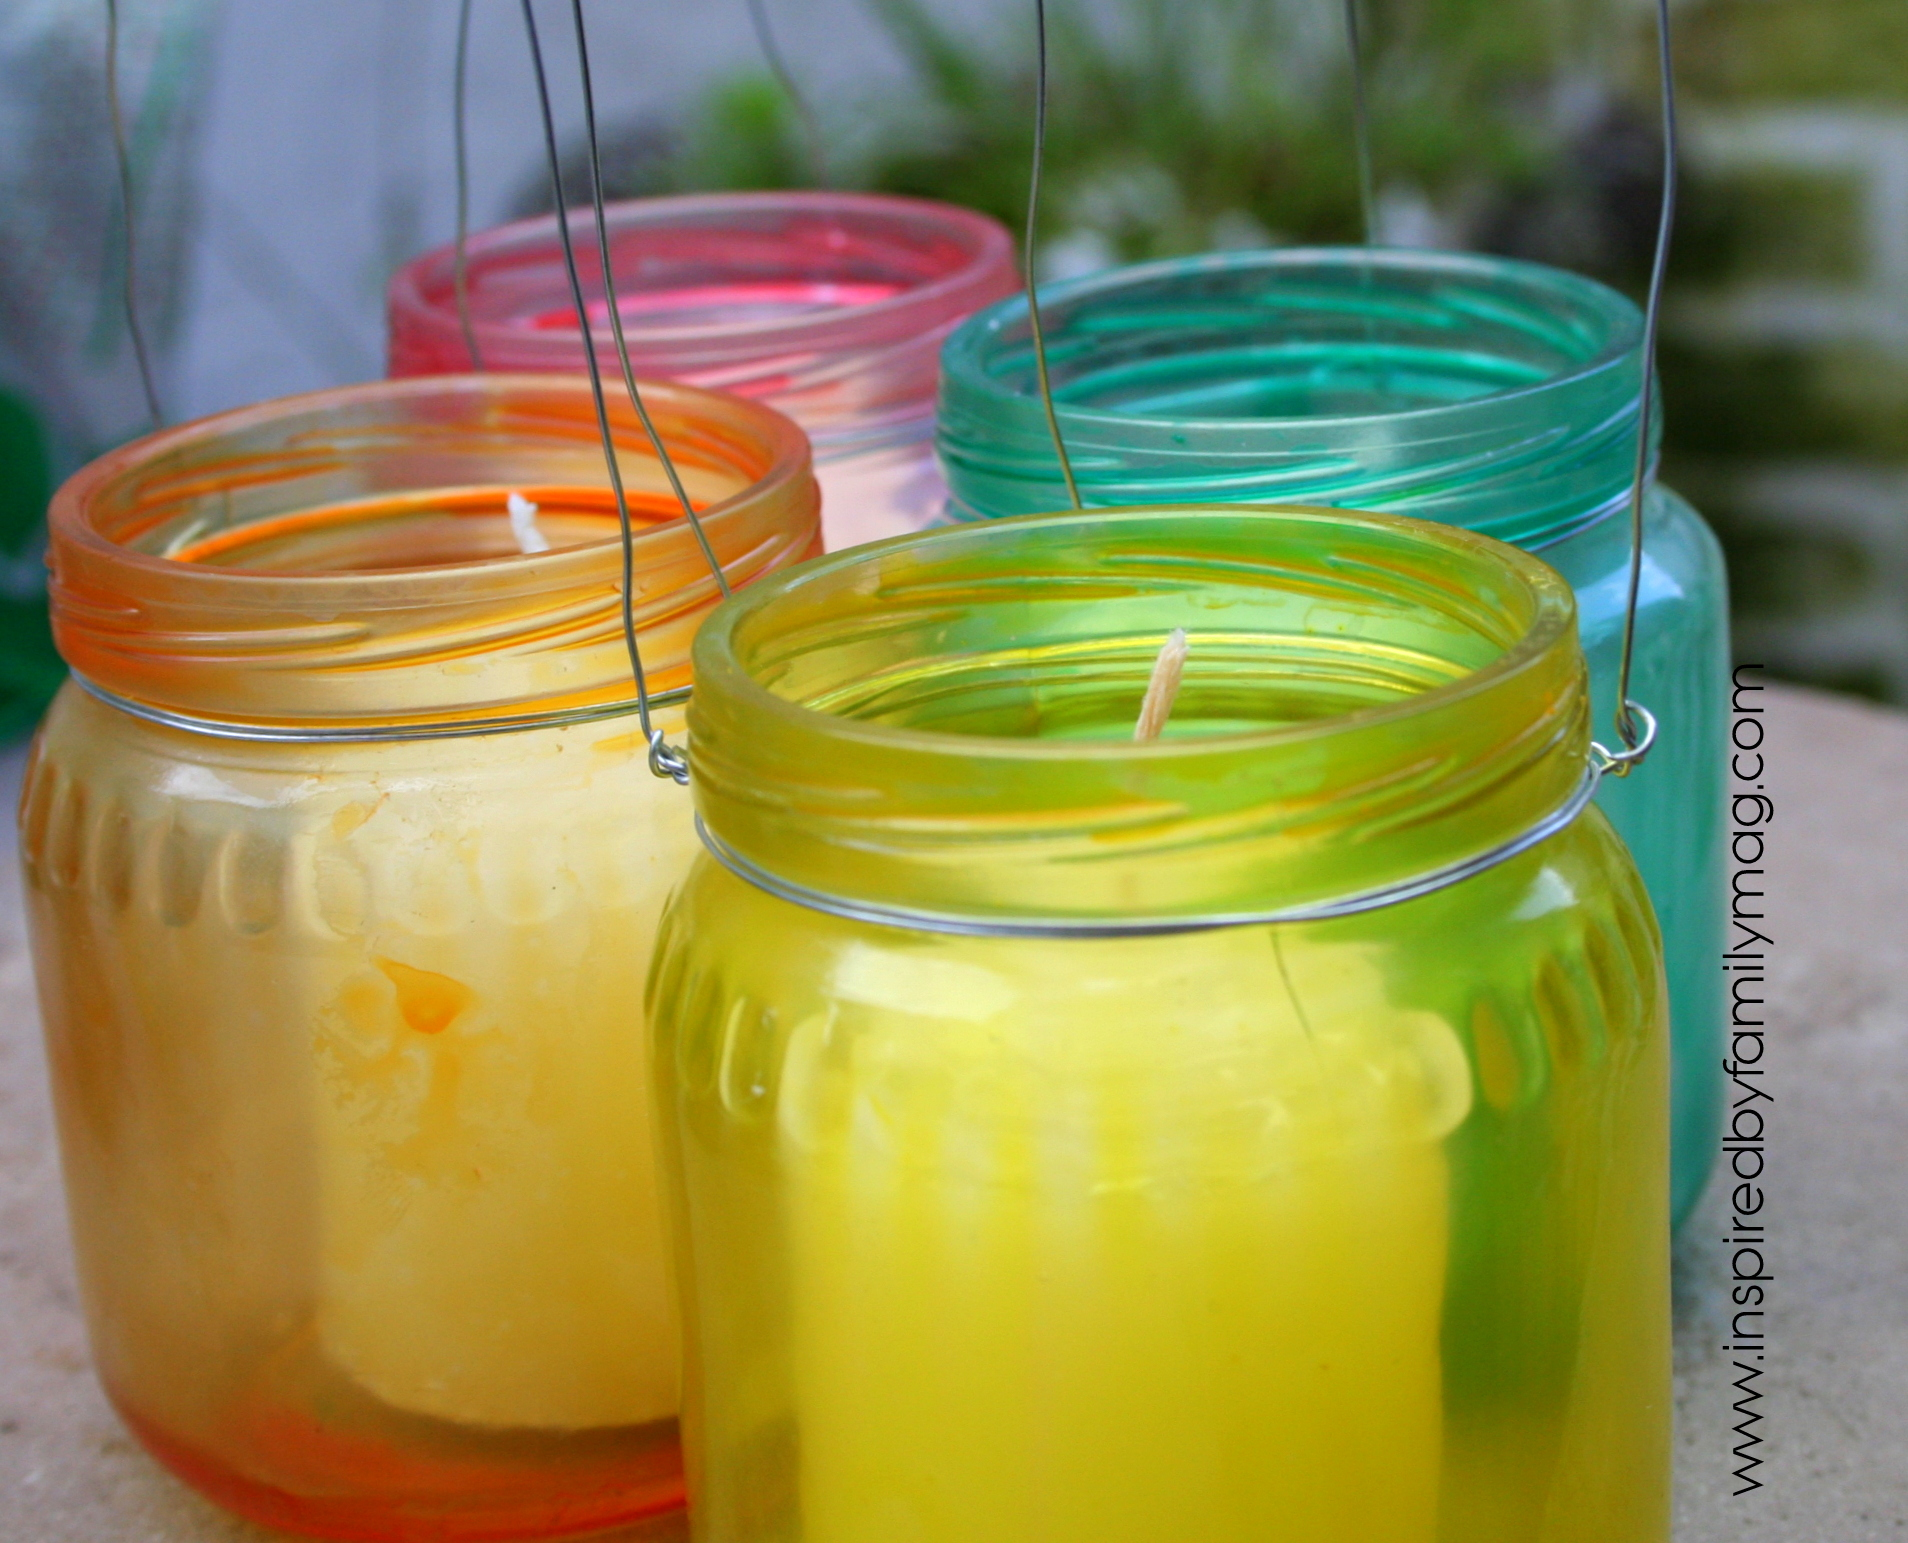 dyed glass luminaries from baby food jars